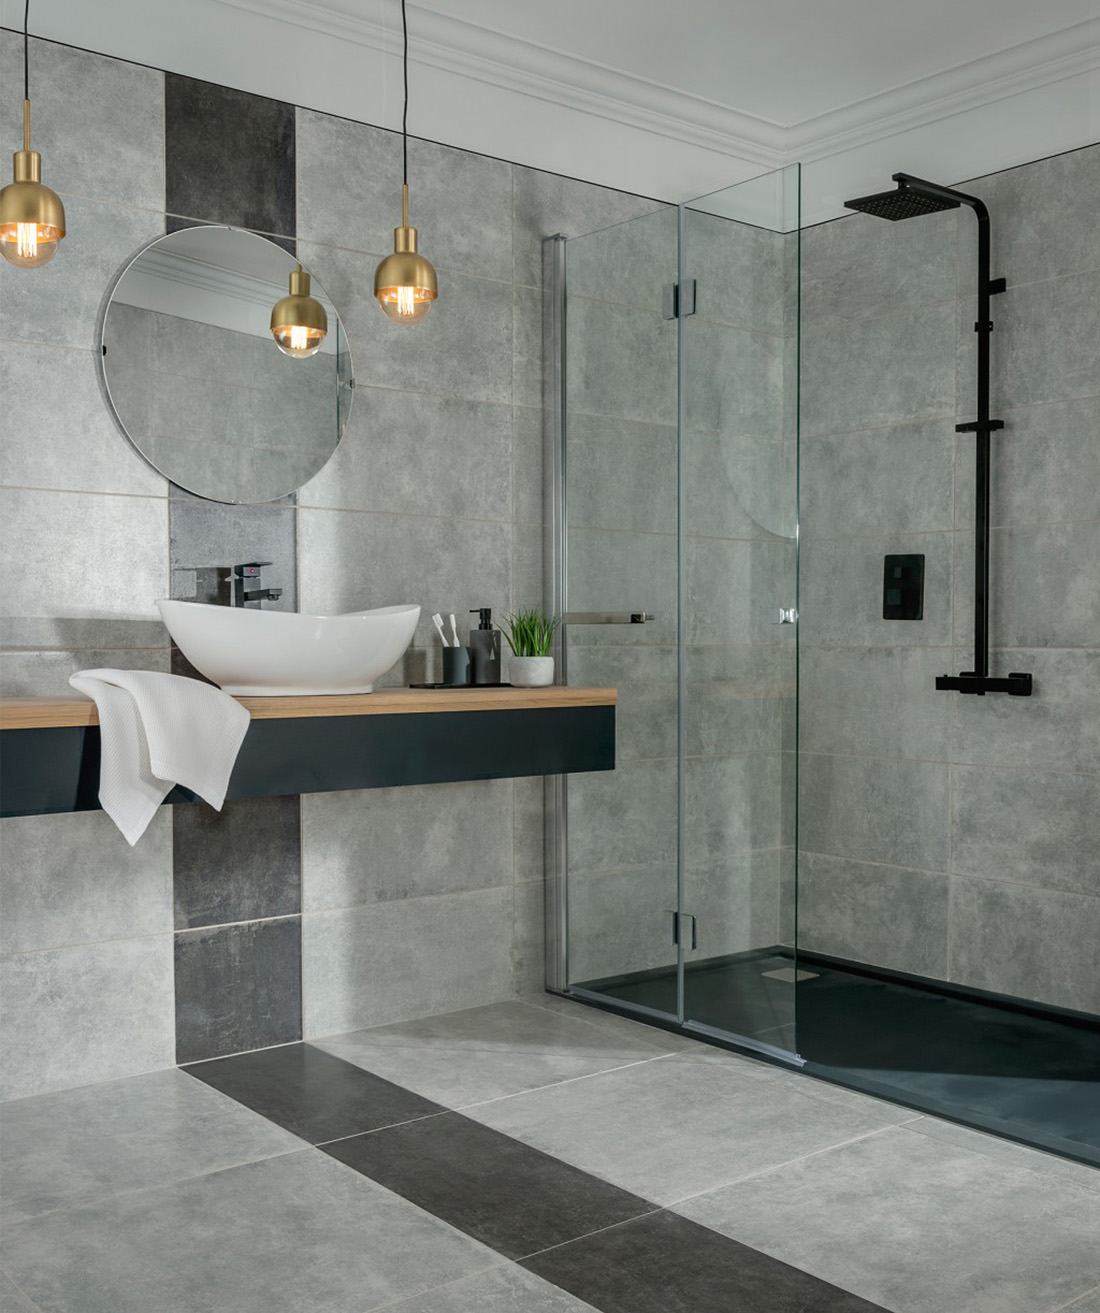 spacious bathroom with grey tiled flooring and walls, round mirror, shower